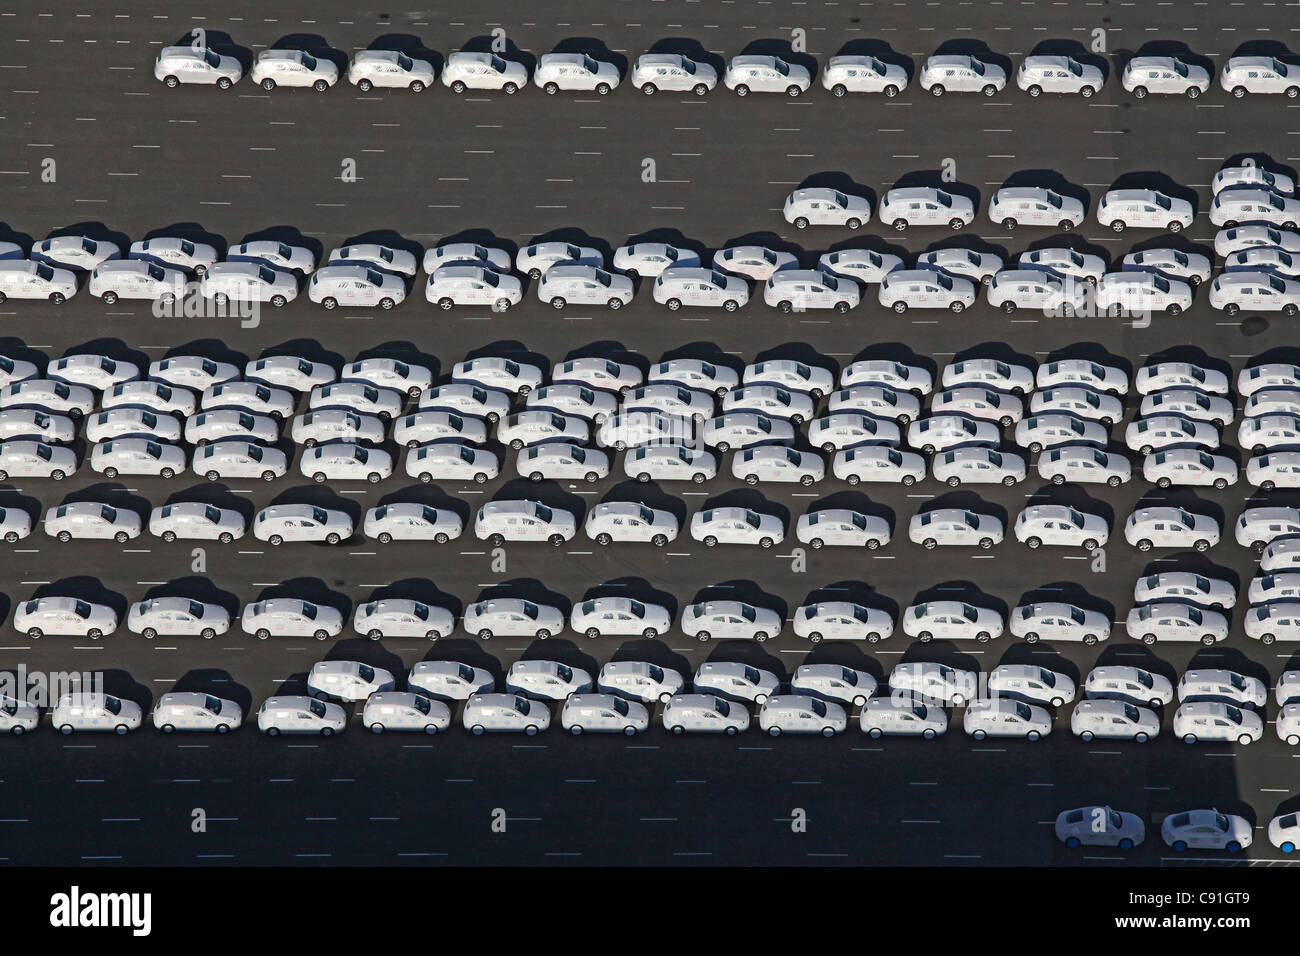 Aerial view of new vehicles waiting to be loaded at Emden harbour, Emden, lower Saxony, northern Germany - Stock Image